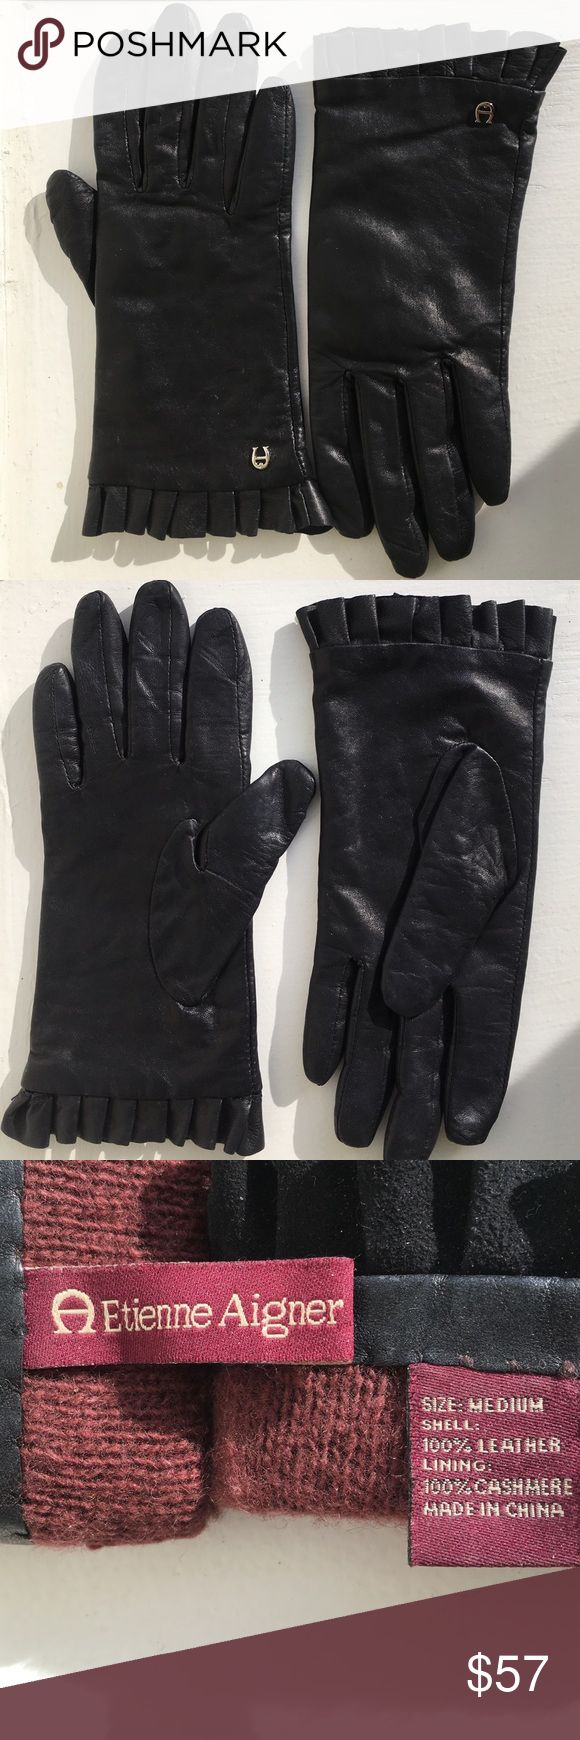 Etienne aigner black leather gloves - Beautiful Etienne Aigner Cashmere Leather Gloves Etienne Aigner Cashmere Leather Gloves Size Medium